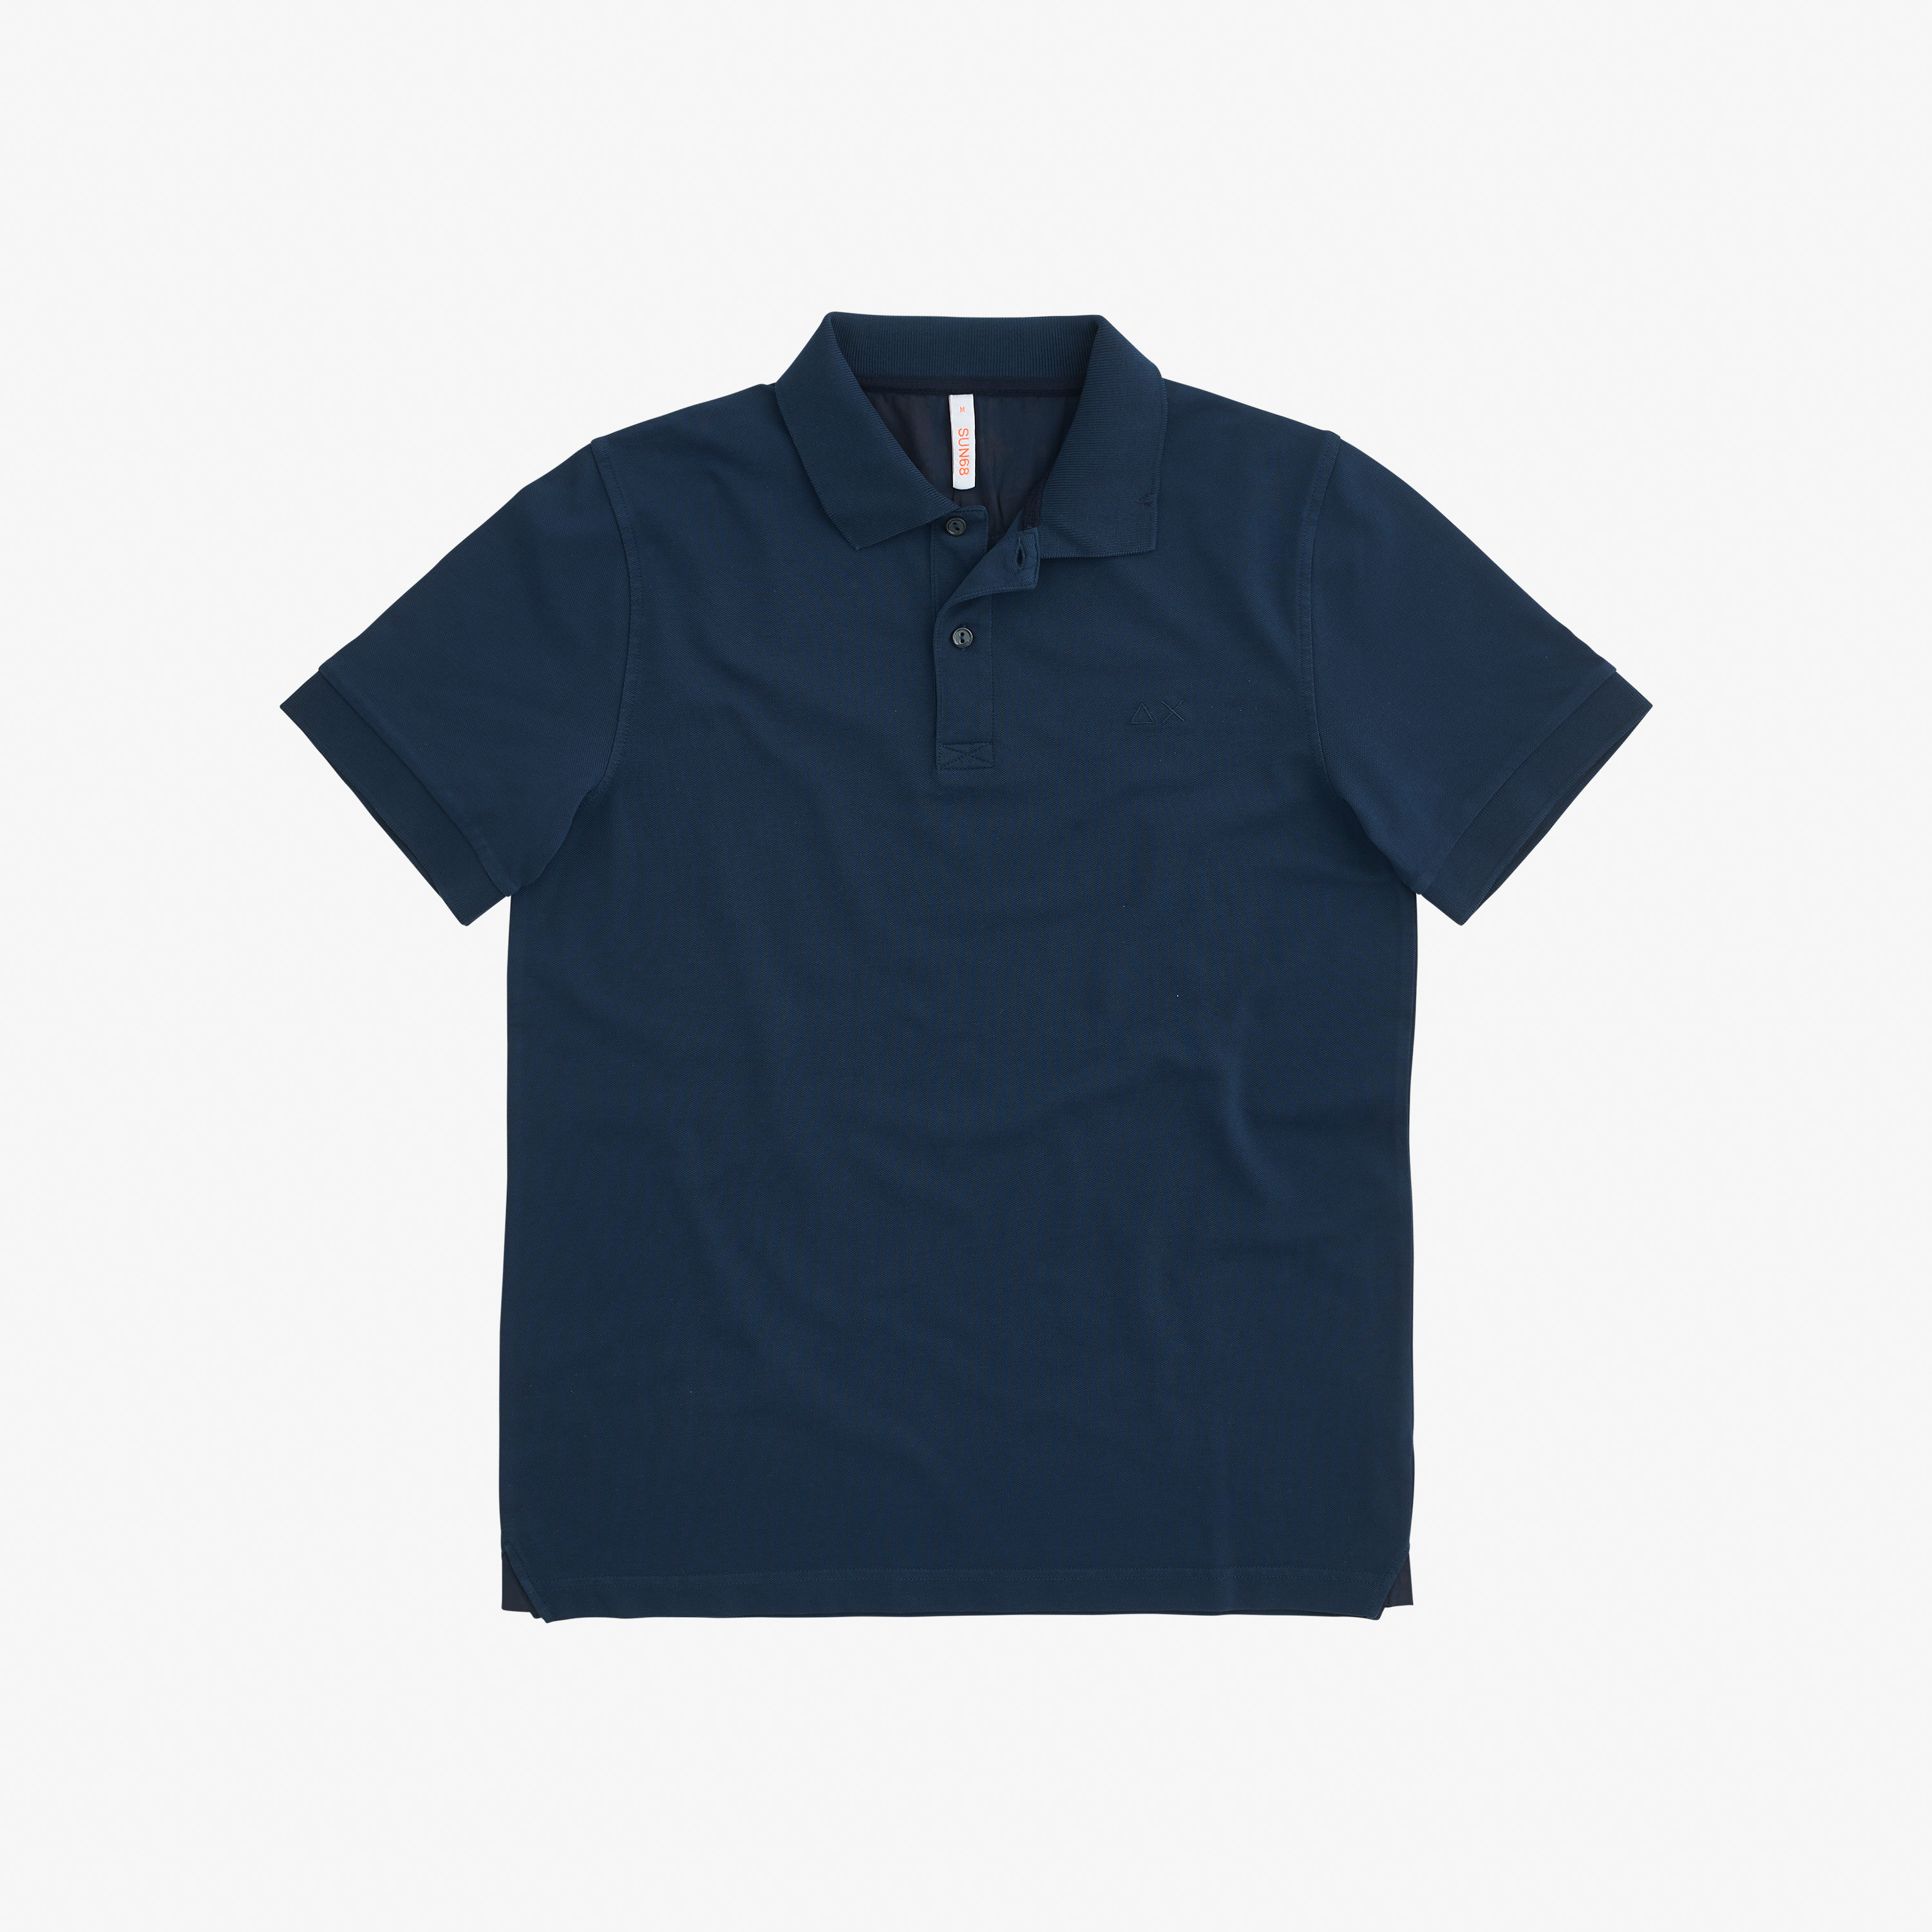 POLO COLD DYE DETAILS EL. NAVY BLUE